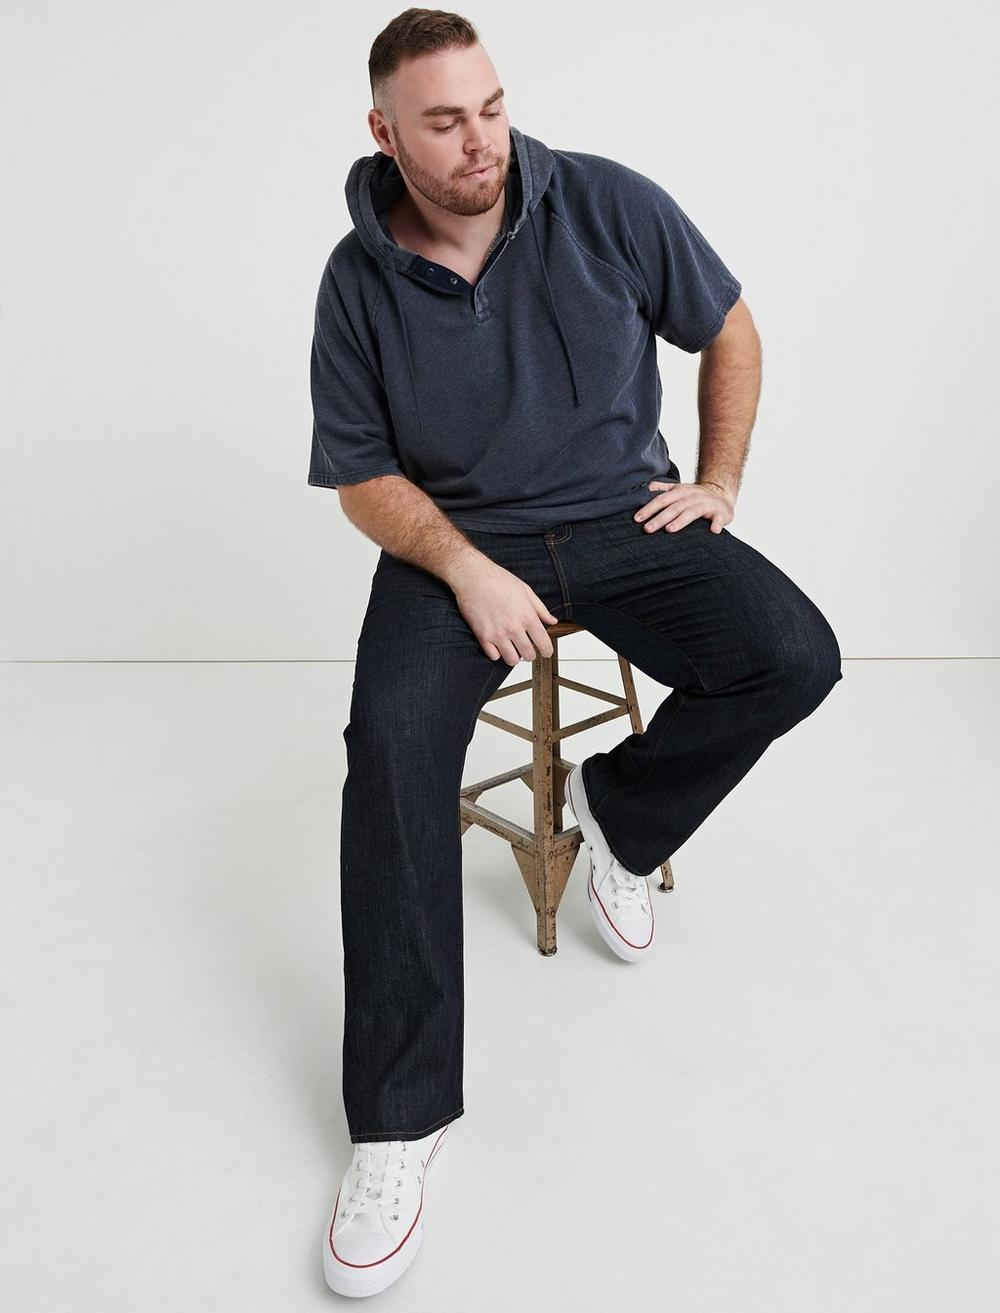 181 RELAXED STRAIGHT BIG & TALL JEAN, image 1